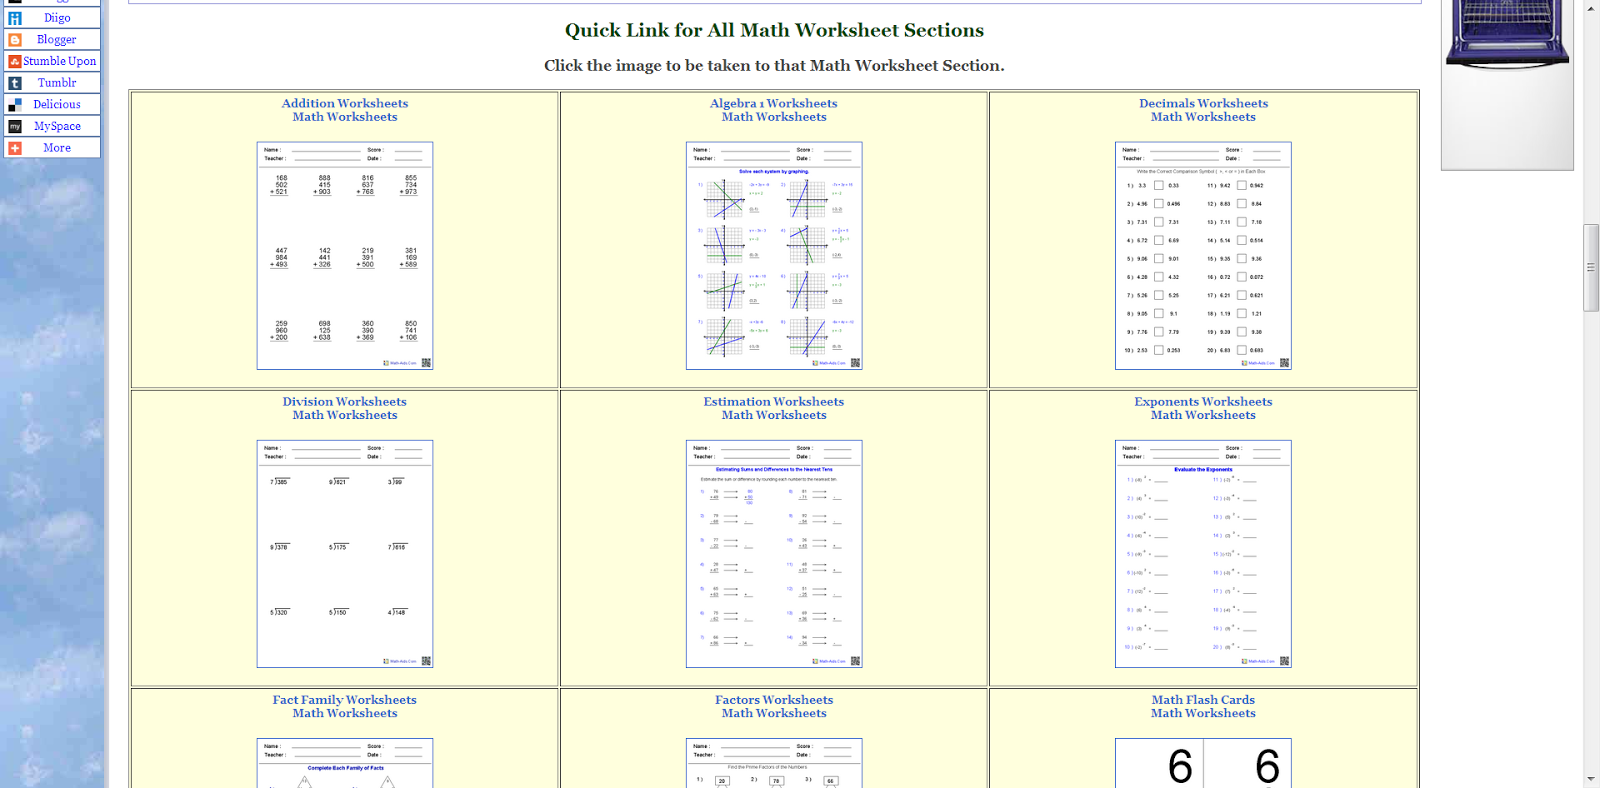 Math Worksheets To Go Free Worksheets Library – Free 5th Grade Math Worksheets with Answer Key